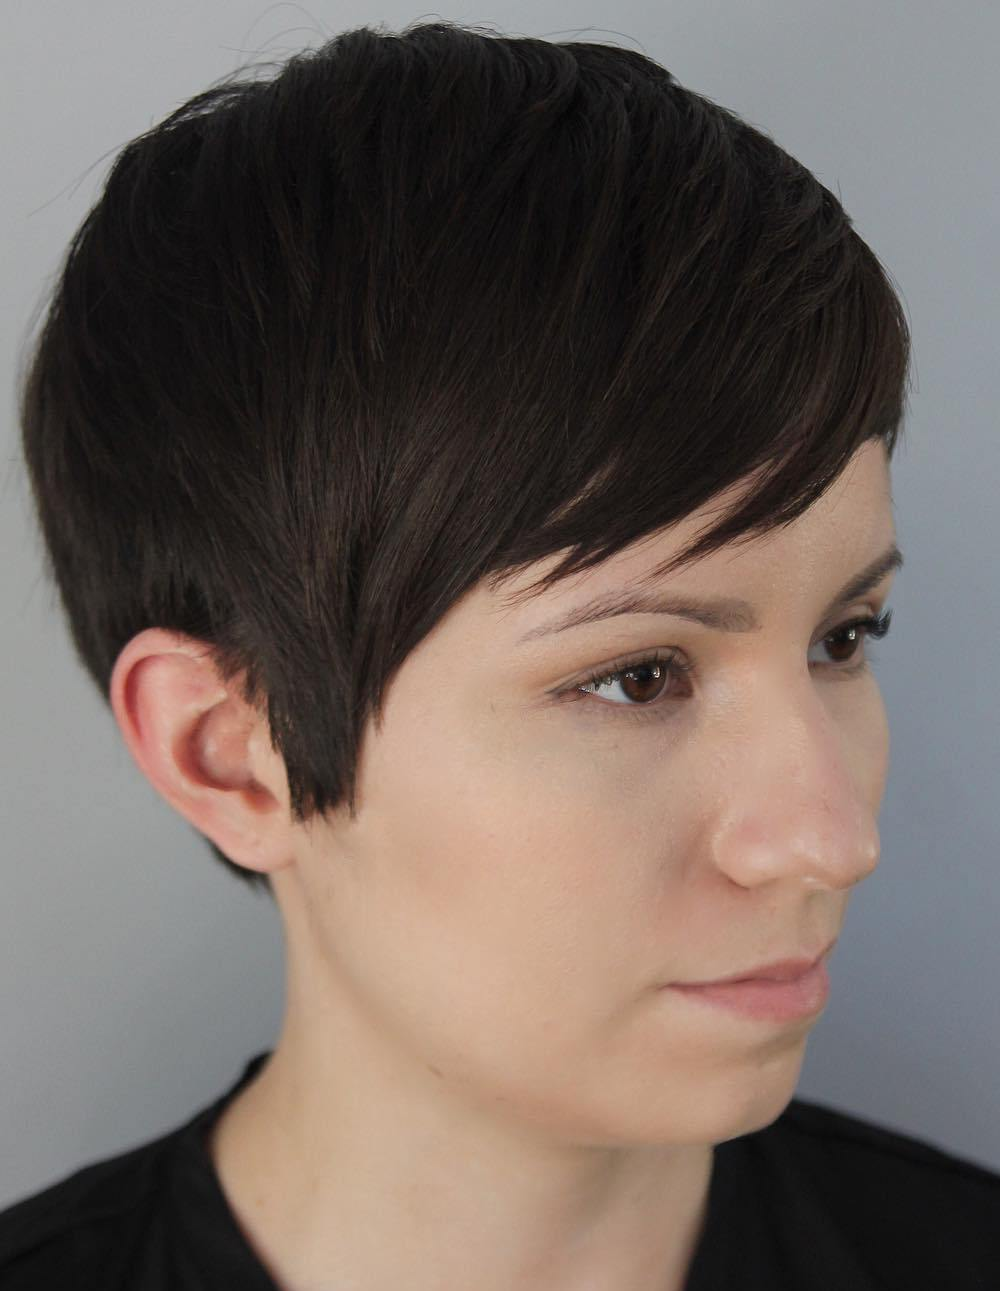 Short Choppy Pixie Cut with Bangs